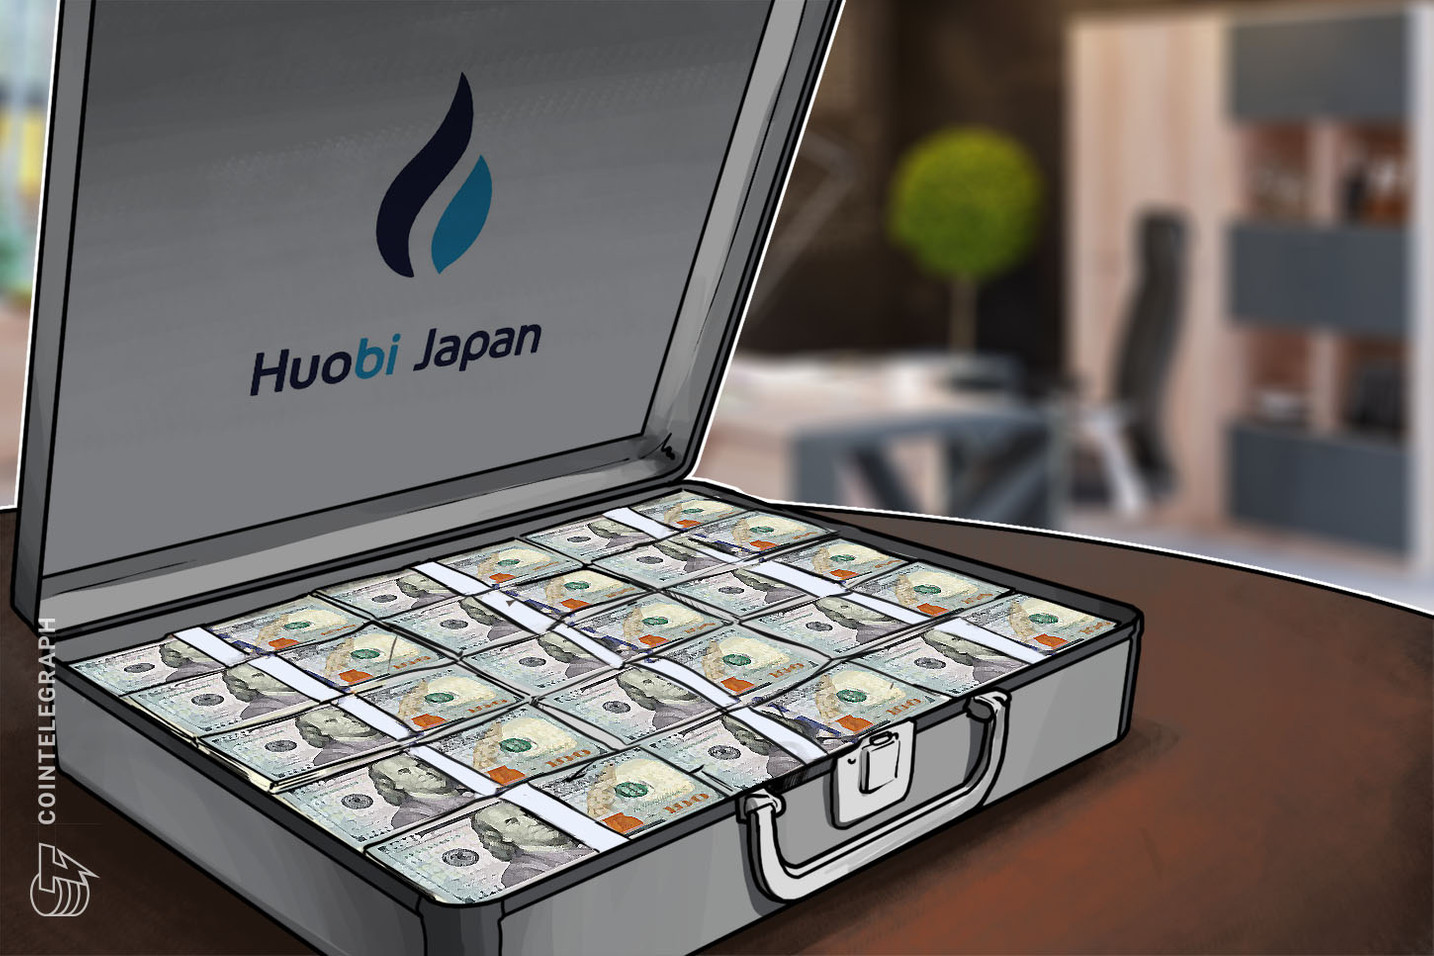 Huobi Japan Raises $4.6M From FPG to Expand Crypto Trading Business